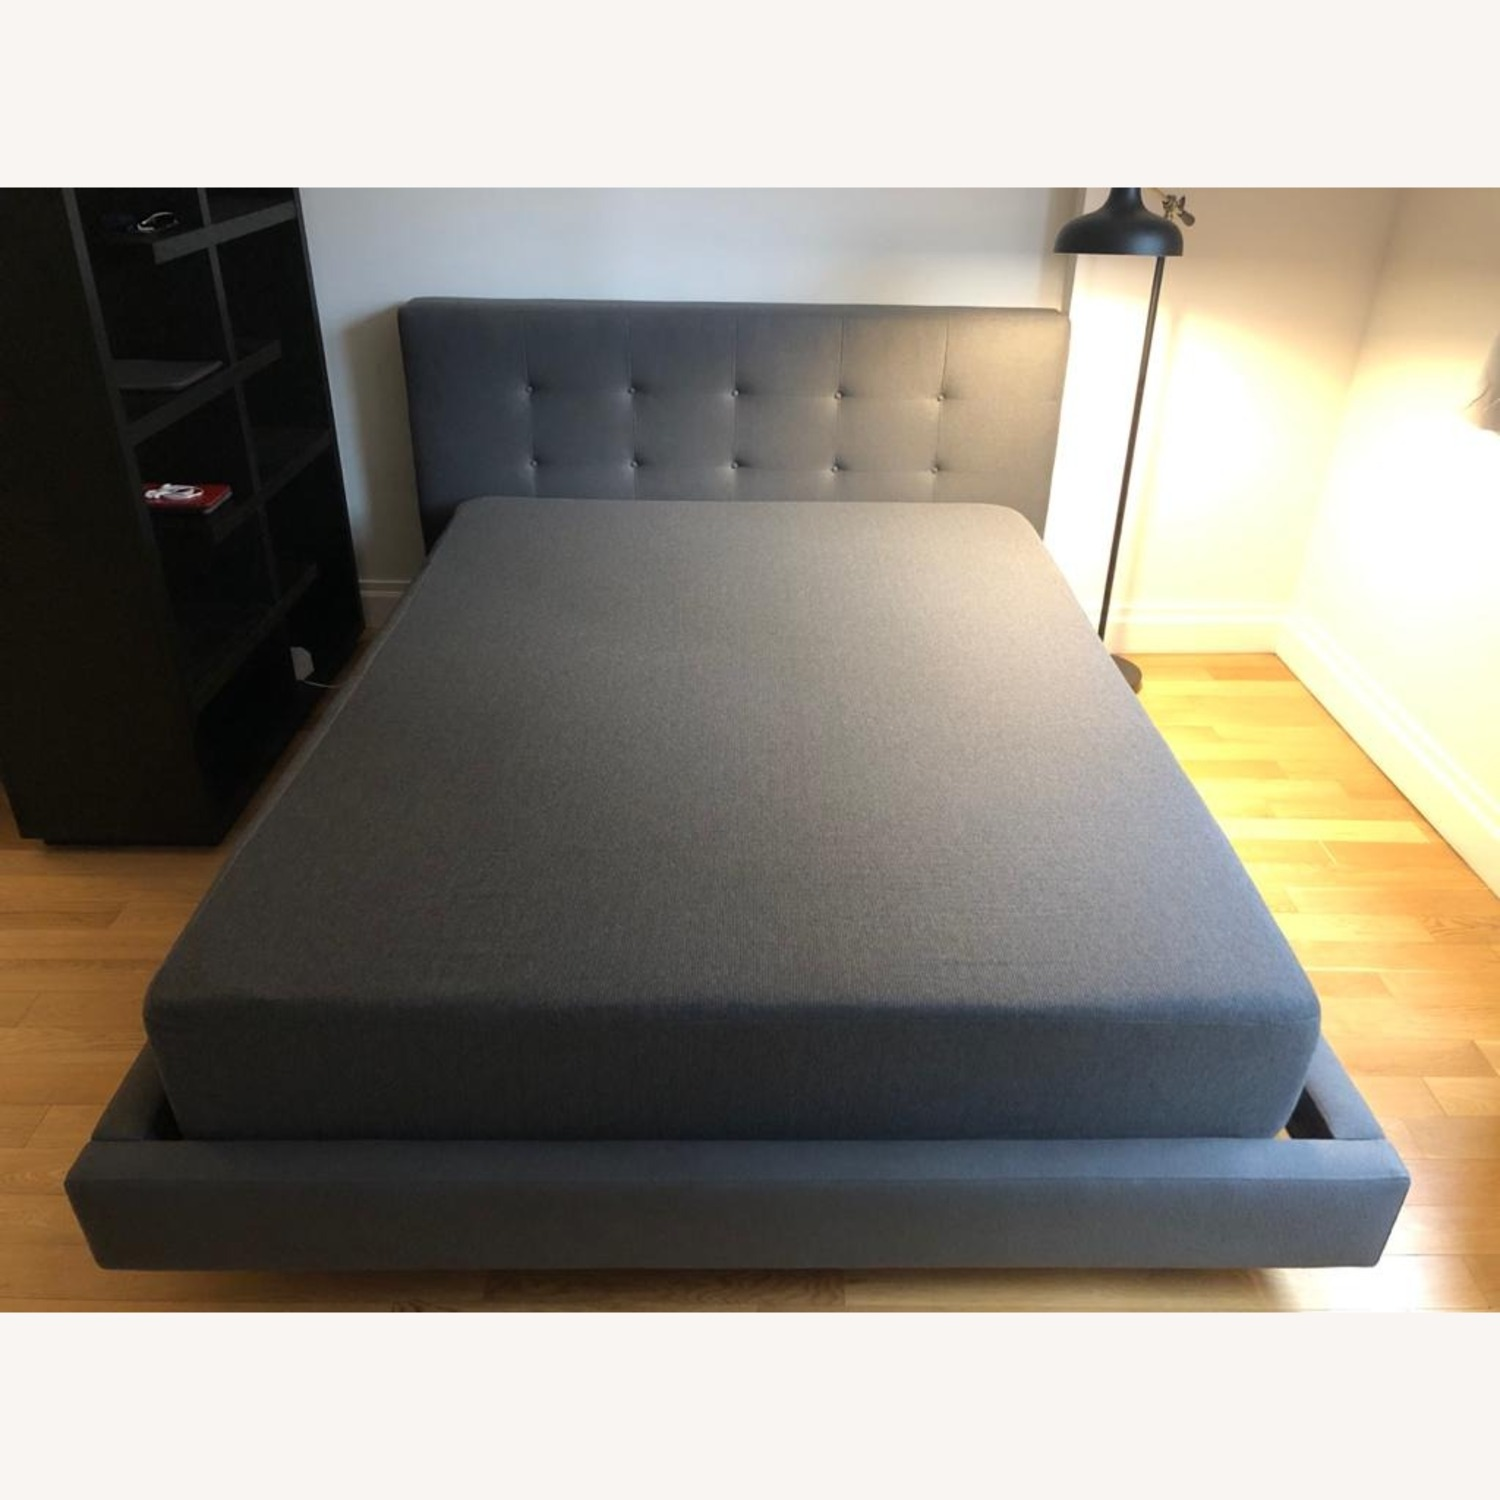 Crate & Barrel Upholstered Bed